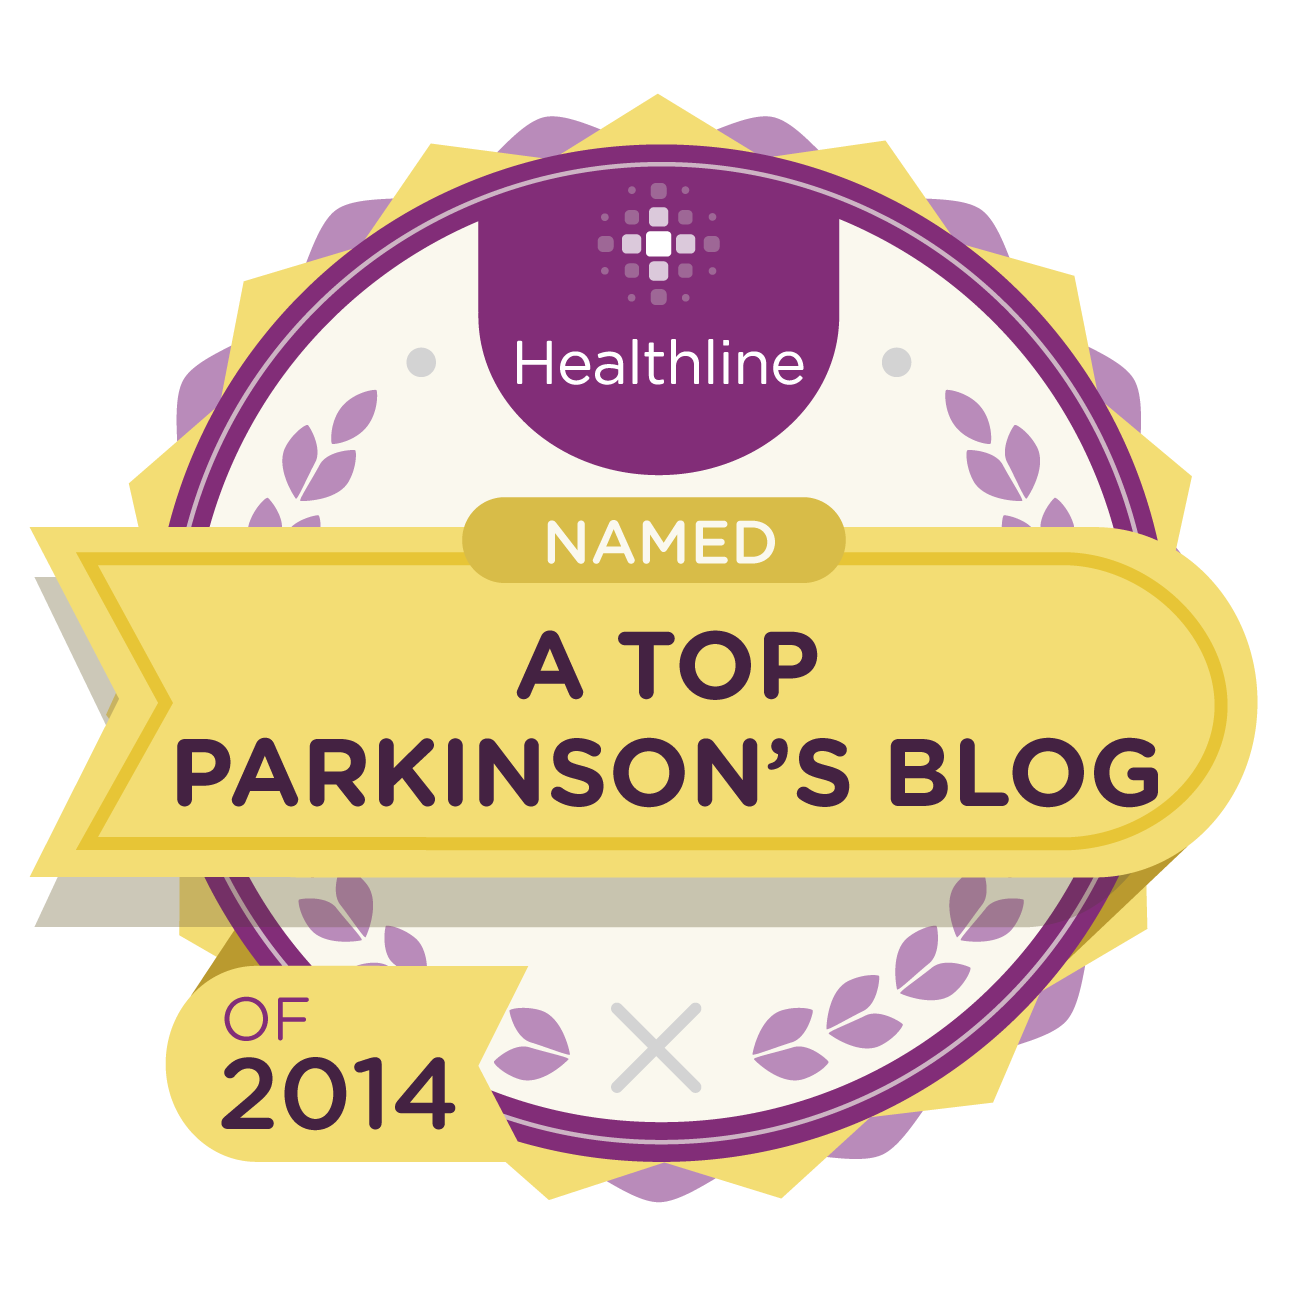 The 15 Best Parkinson's Blogs of 2014